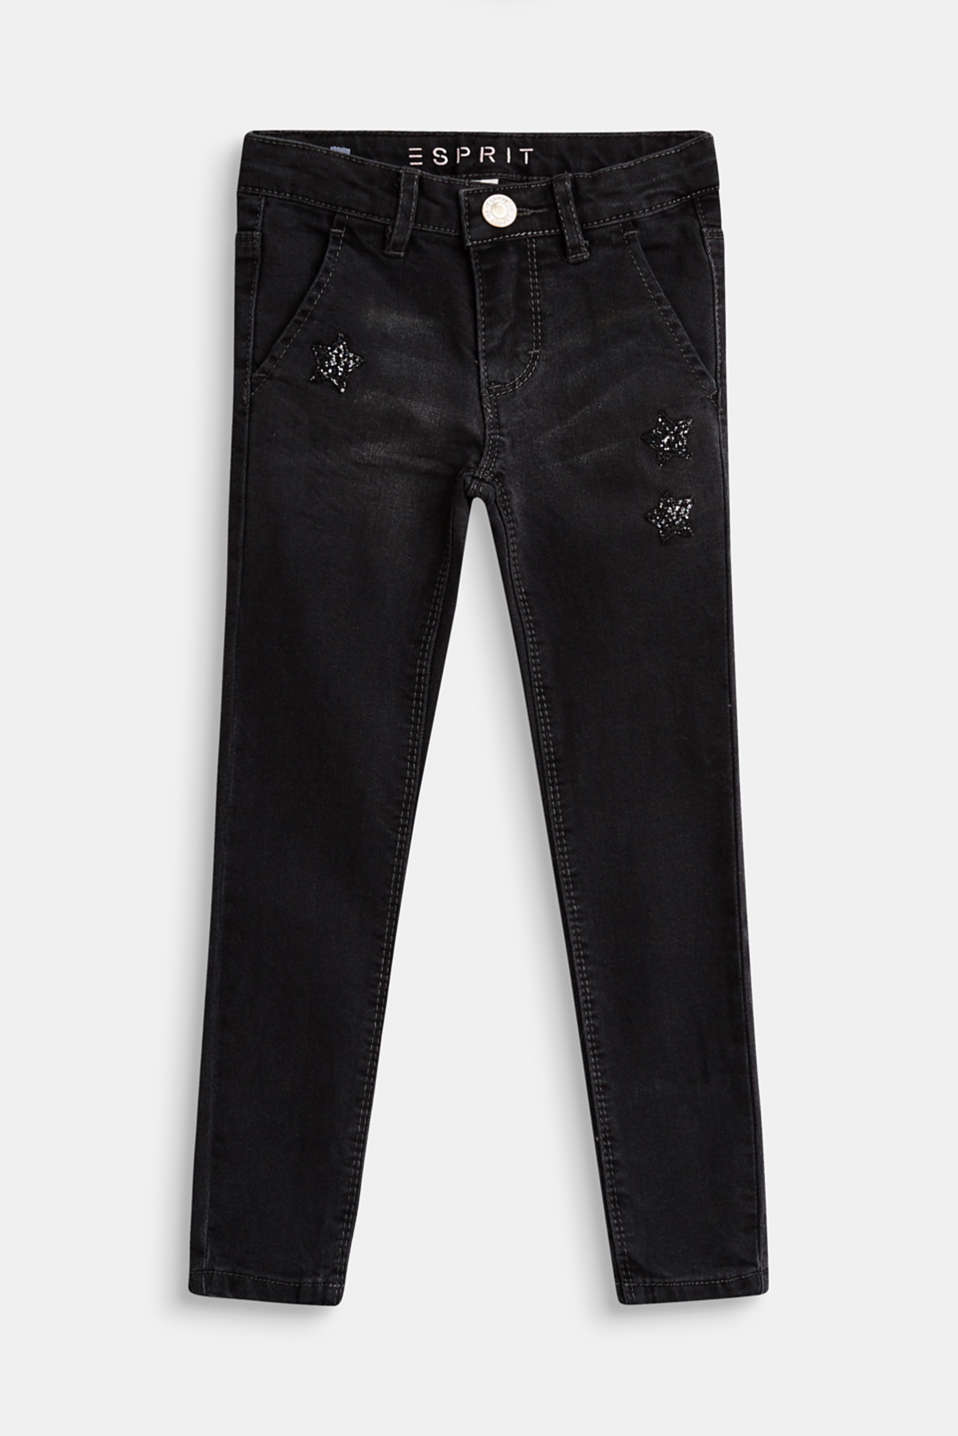 Esprit - Stretch jeans with glittery stars